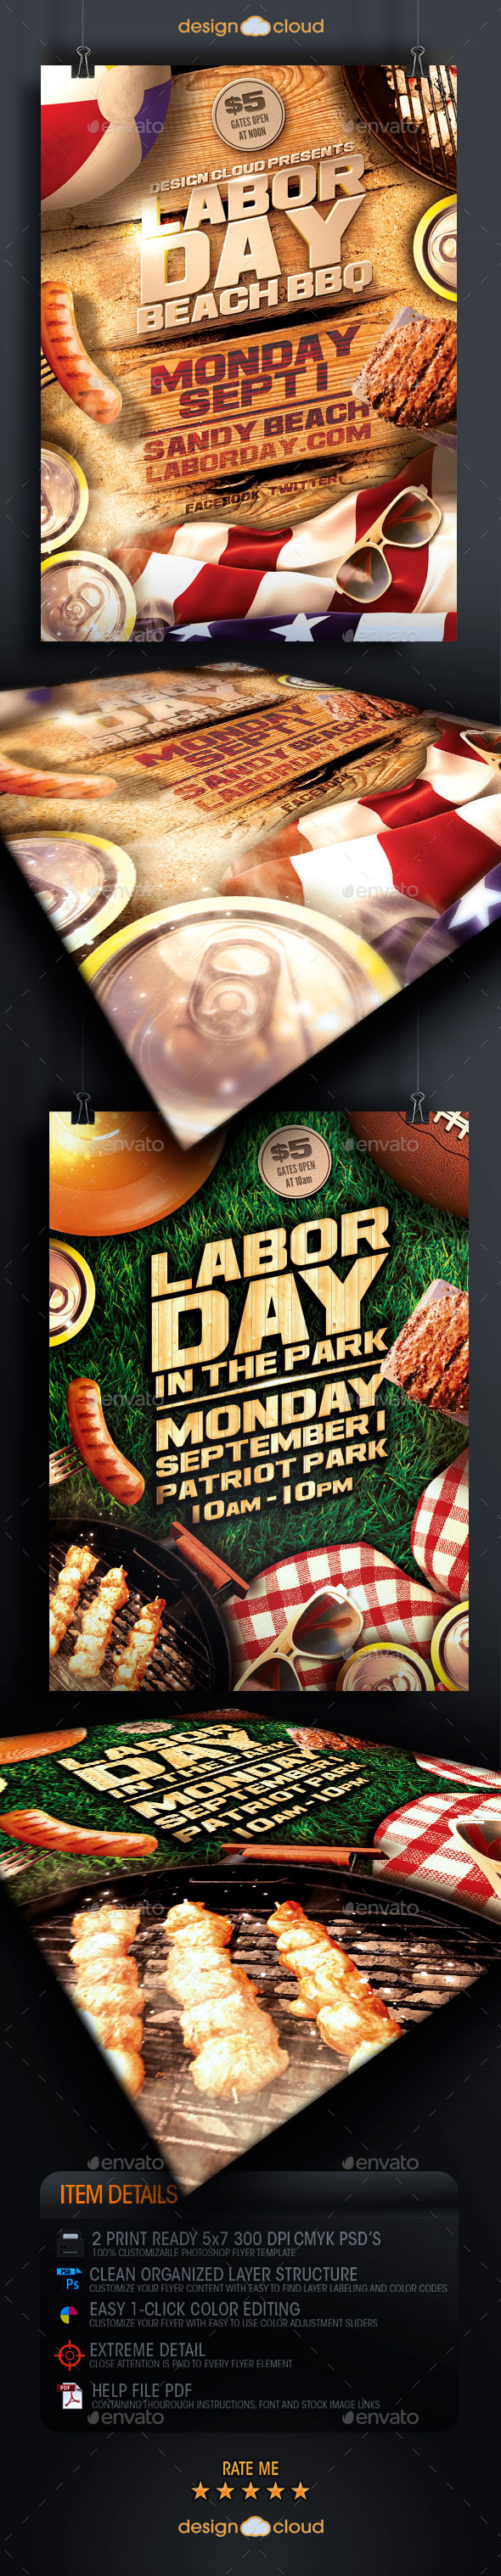 Labor Day Beach and Park Party Flyer Template Duo - Holidays Events